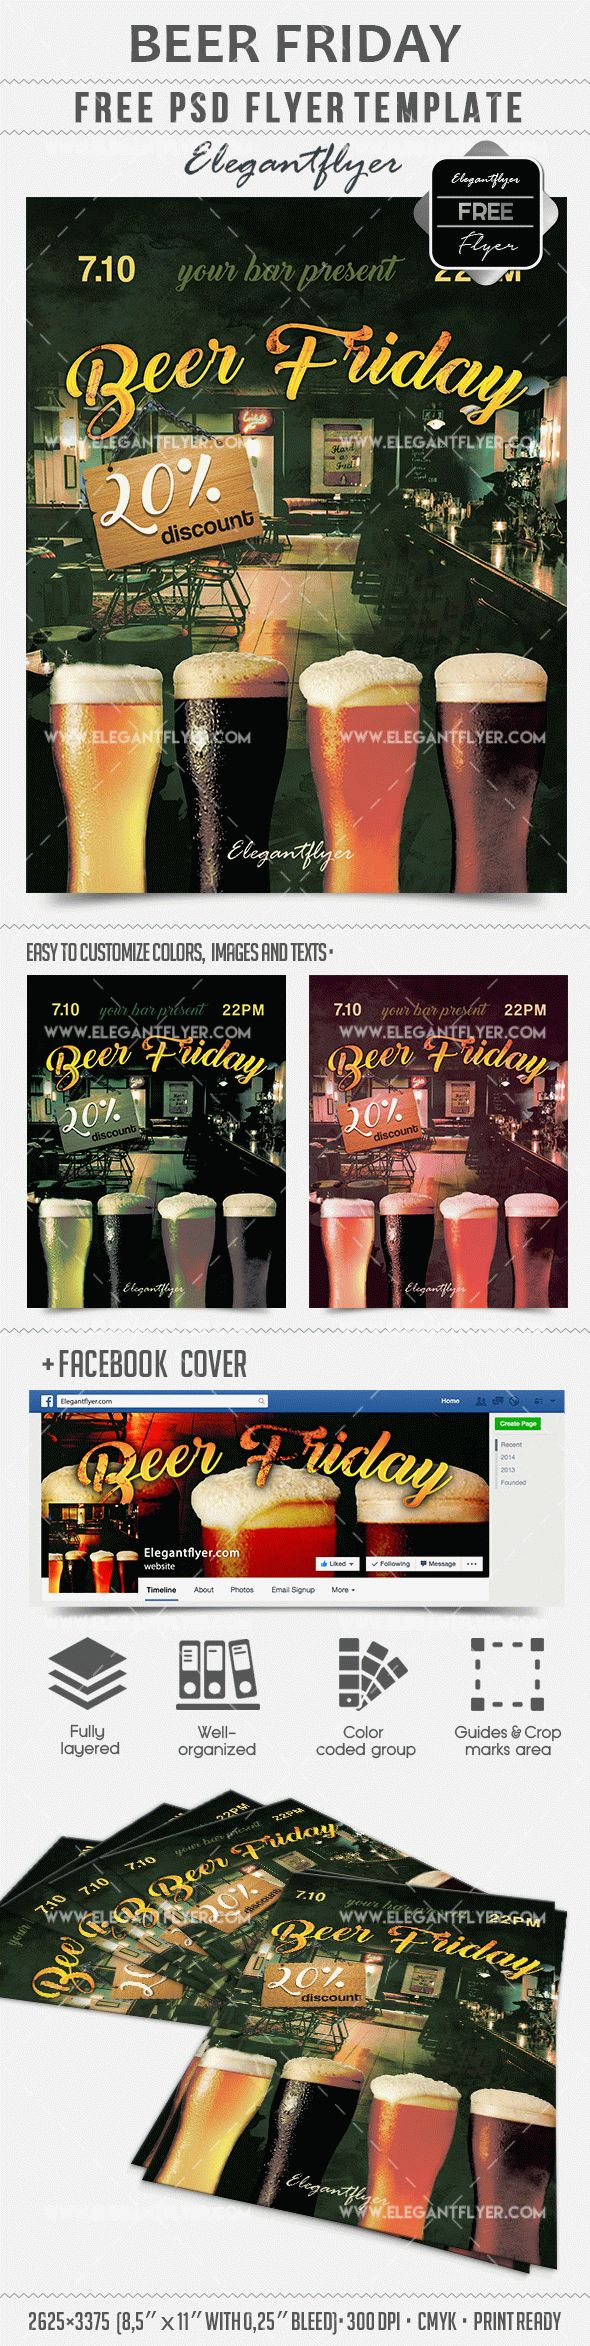 Beer Friday – Free PSD Template + Facebook cover